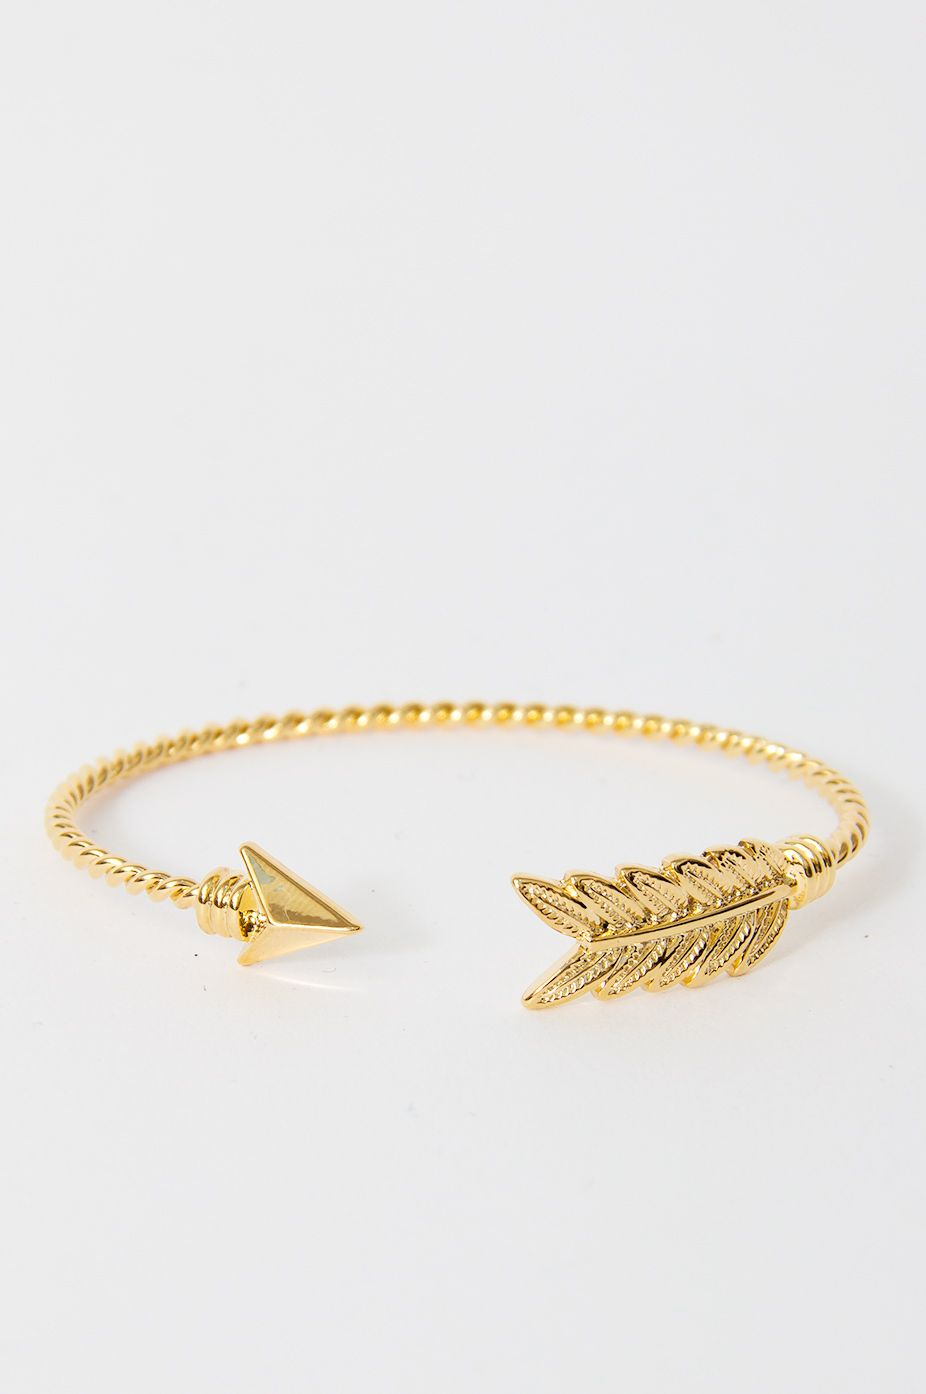 pic jewelry p gold shengsheng twisted double bead item zhou pricing female models bracelet